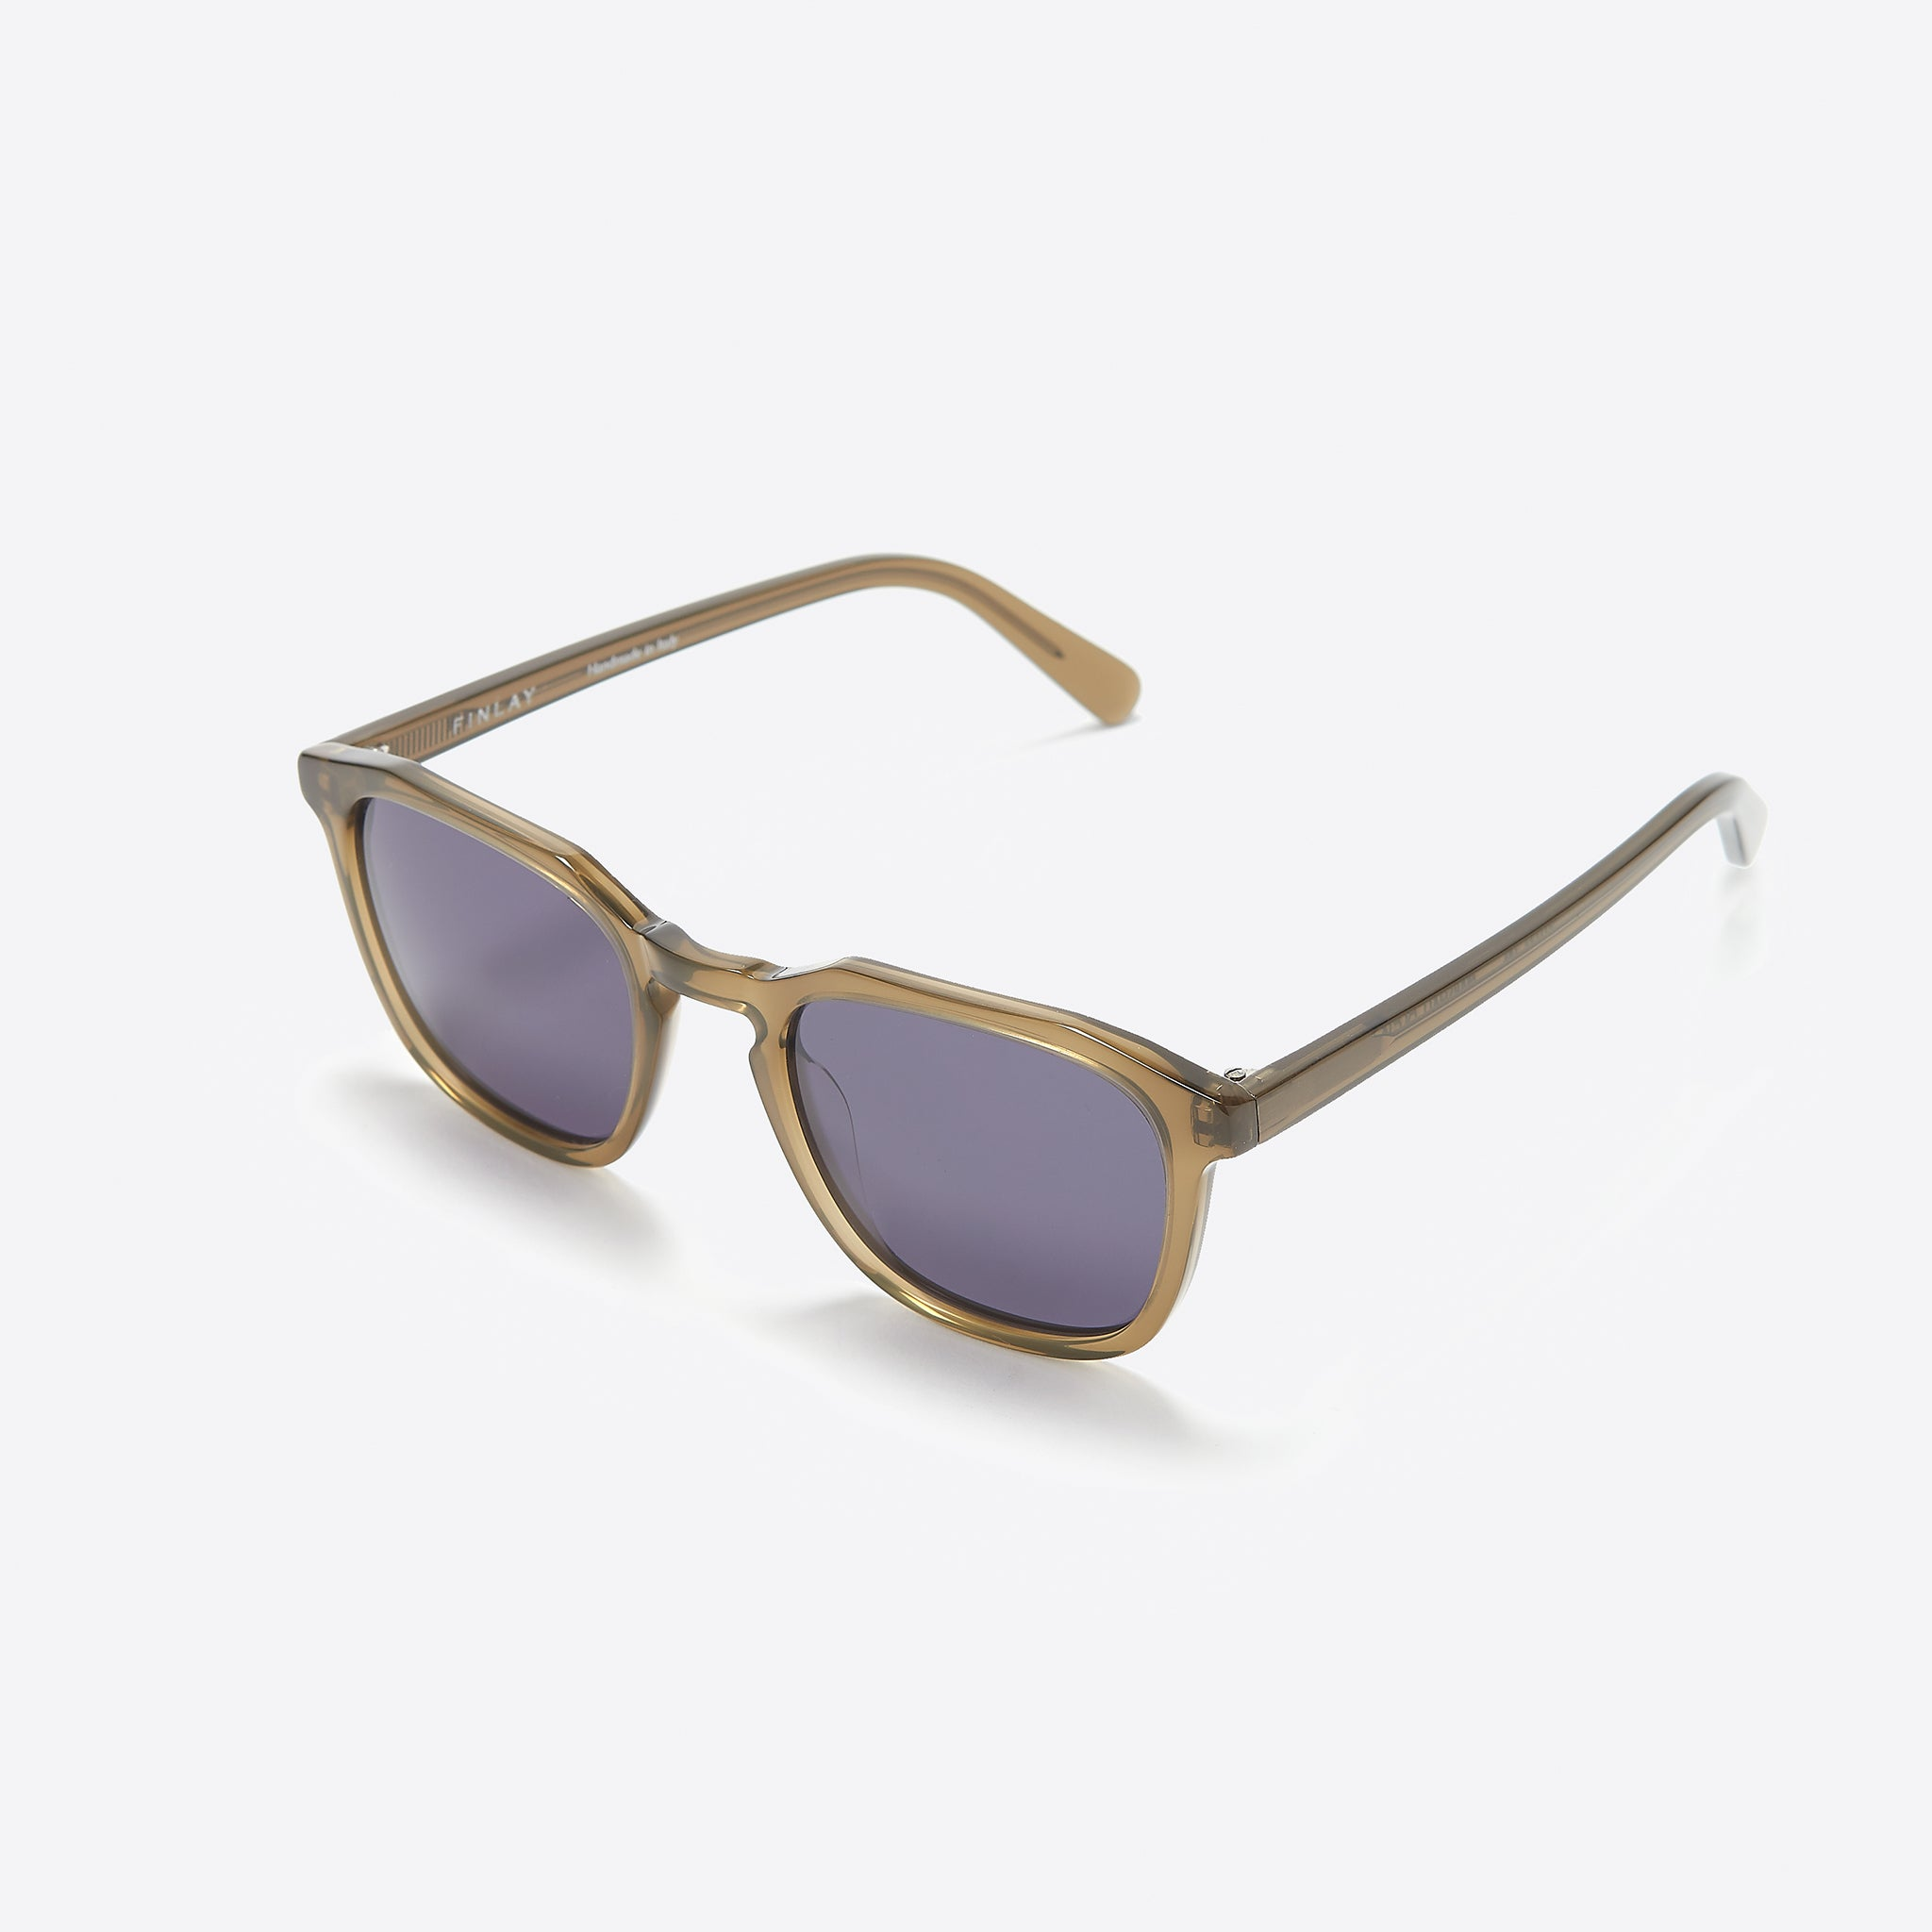 FINLAY London Marshall Sunglasses in Olive